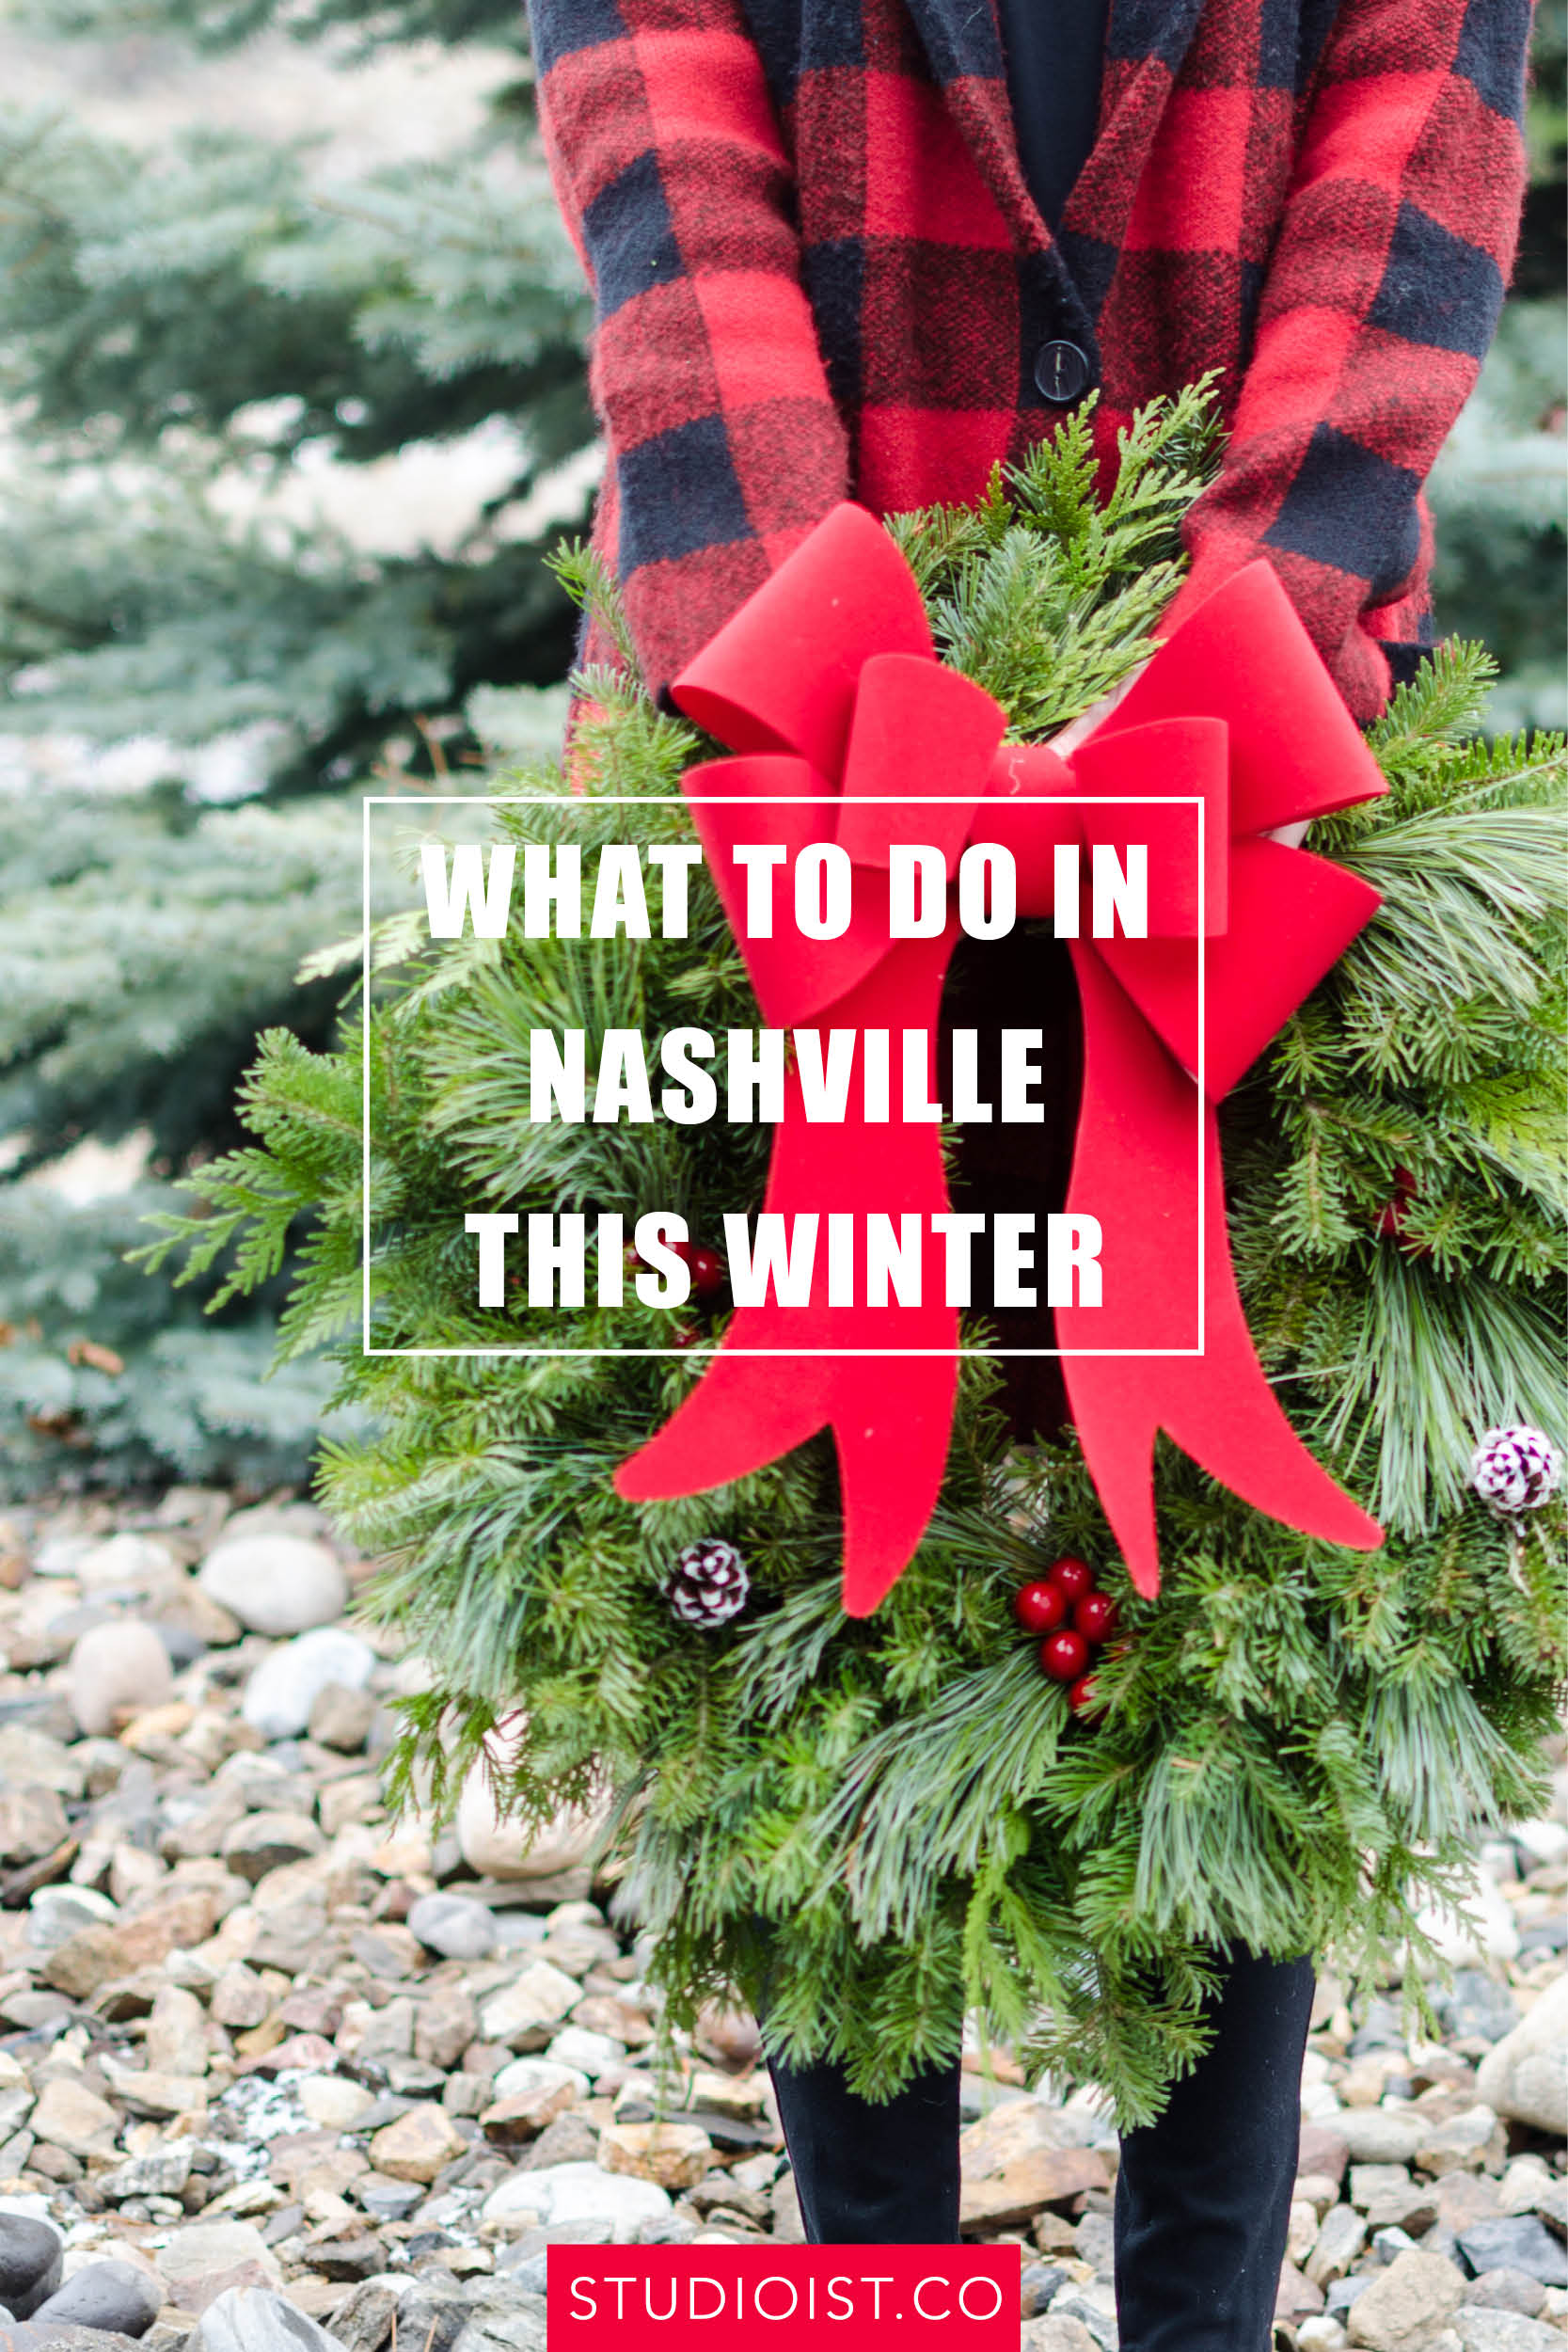 Studioist_Pinterest Design_Nashville Winter Events2.jpg